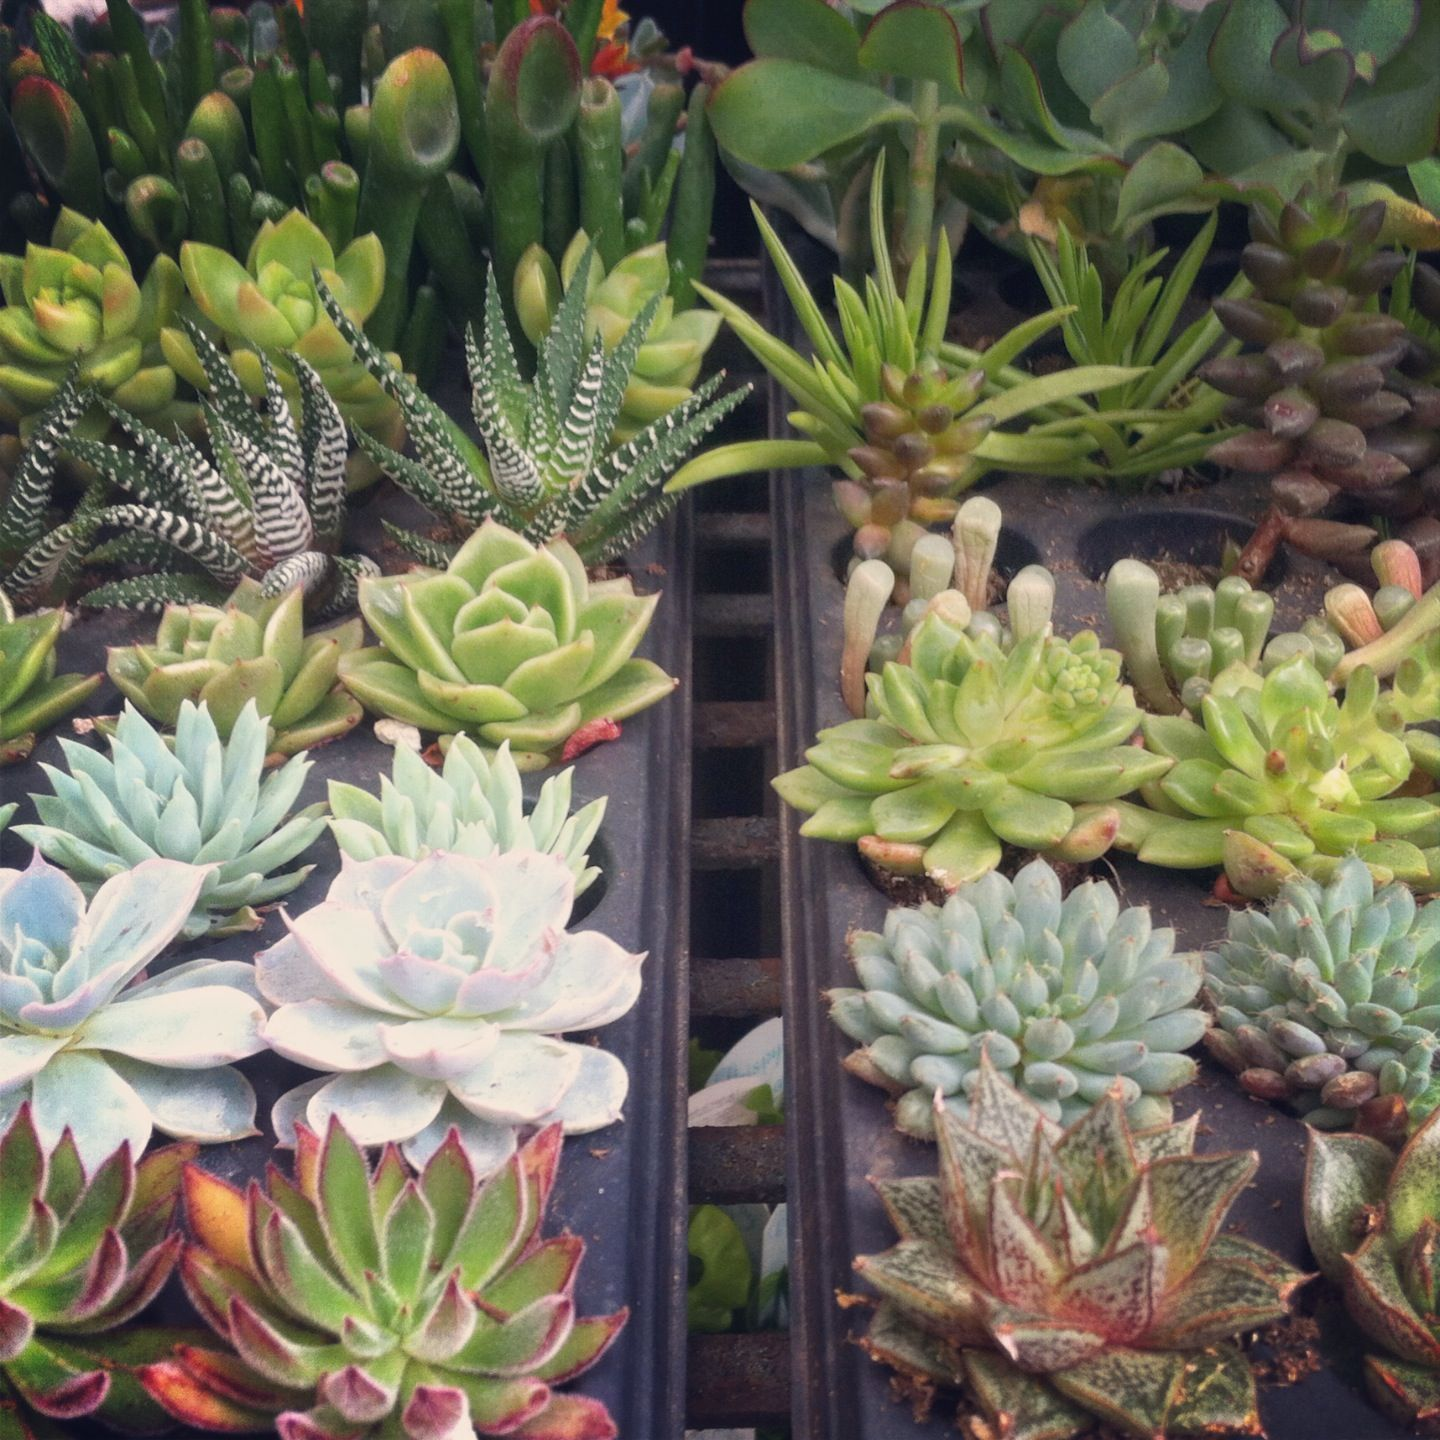 Come Visit Garden Supply Co In Cary, NC